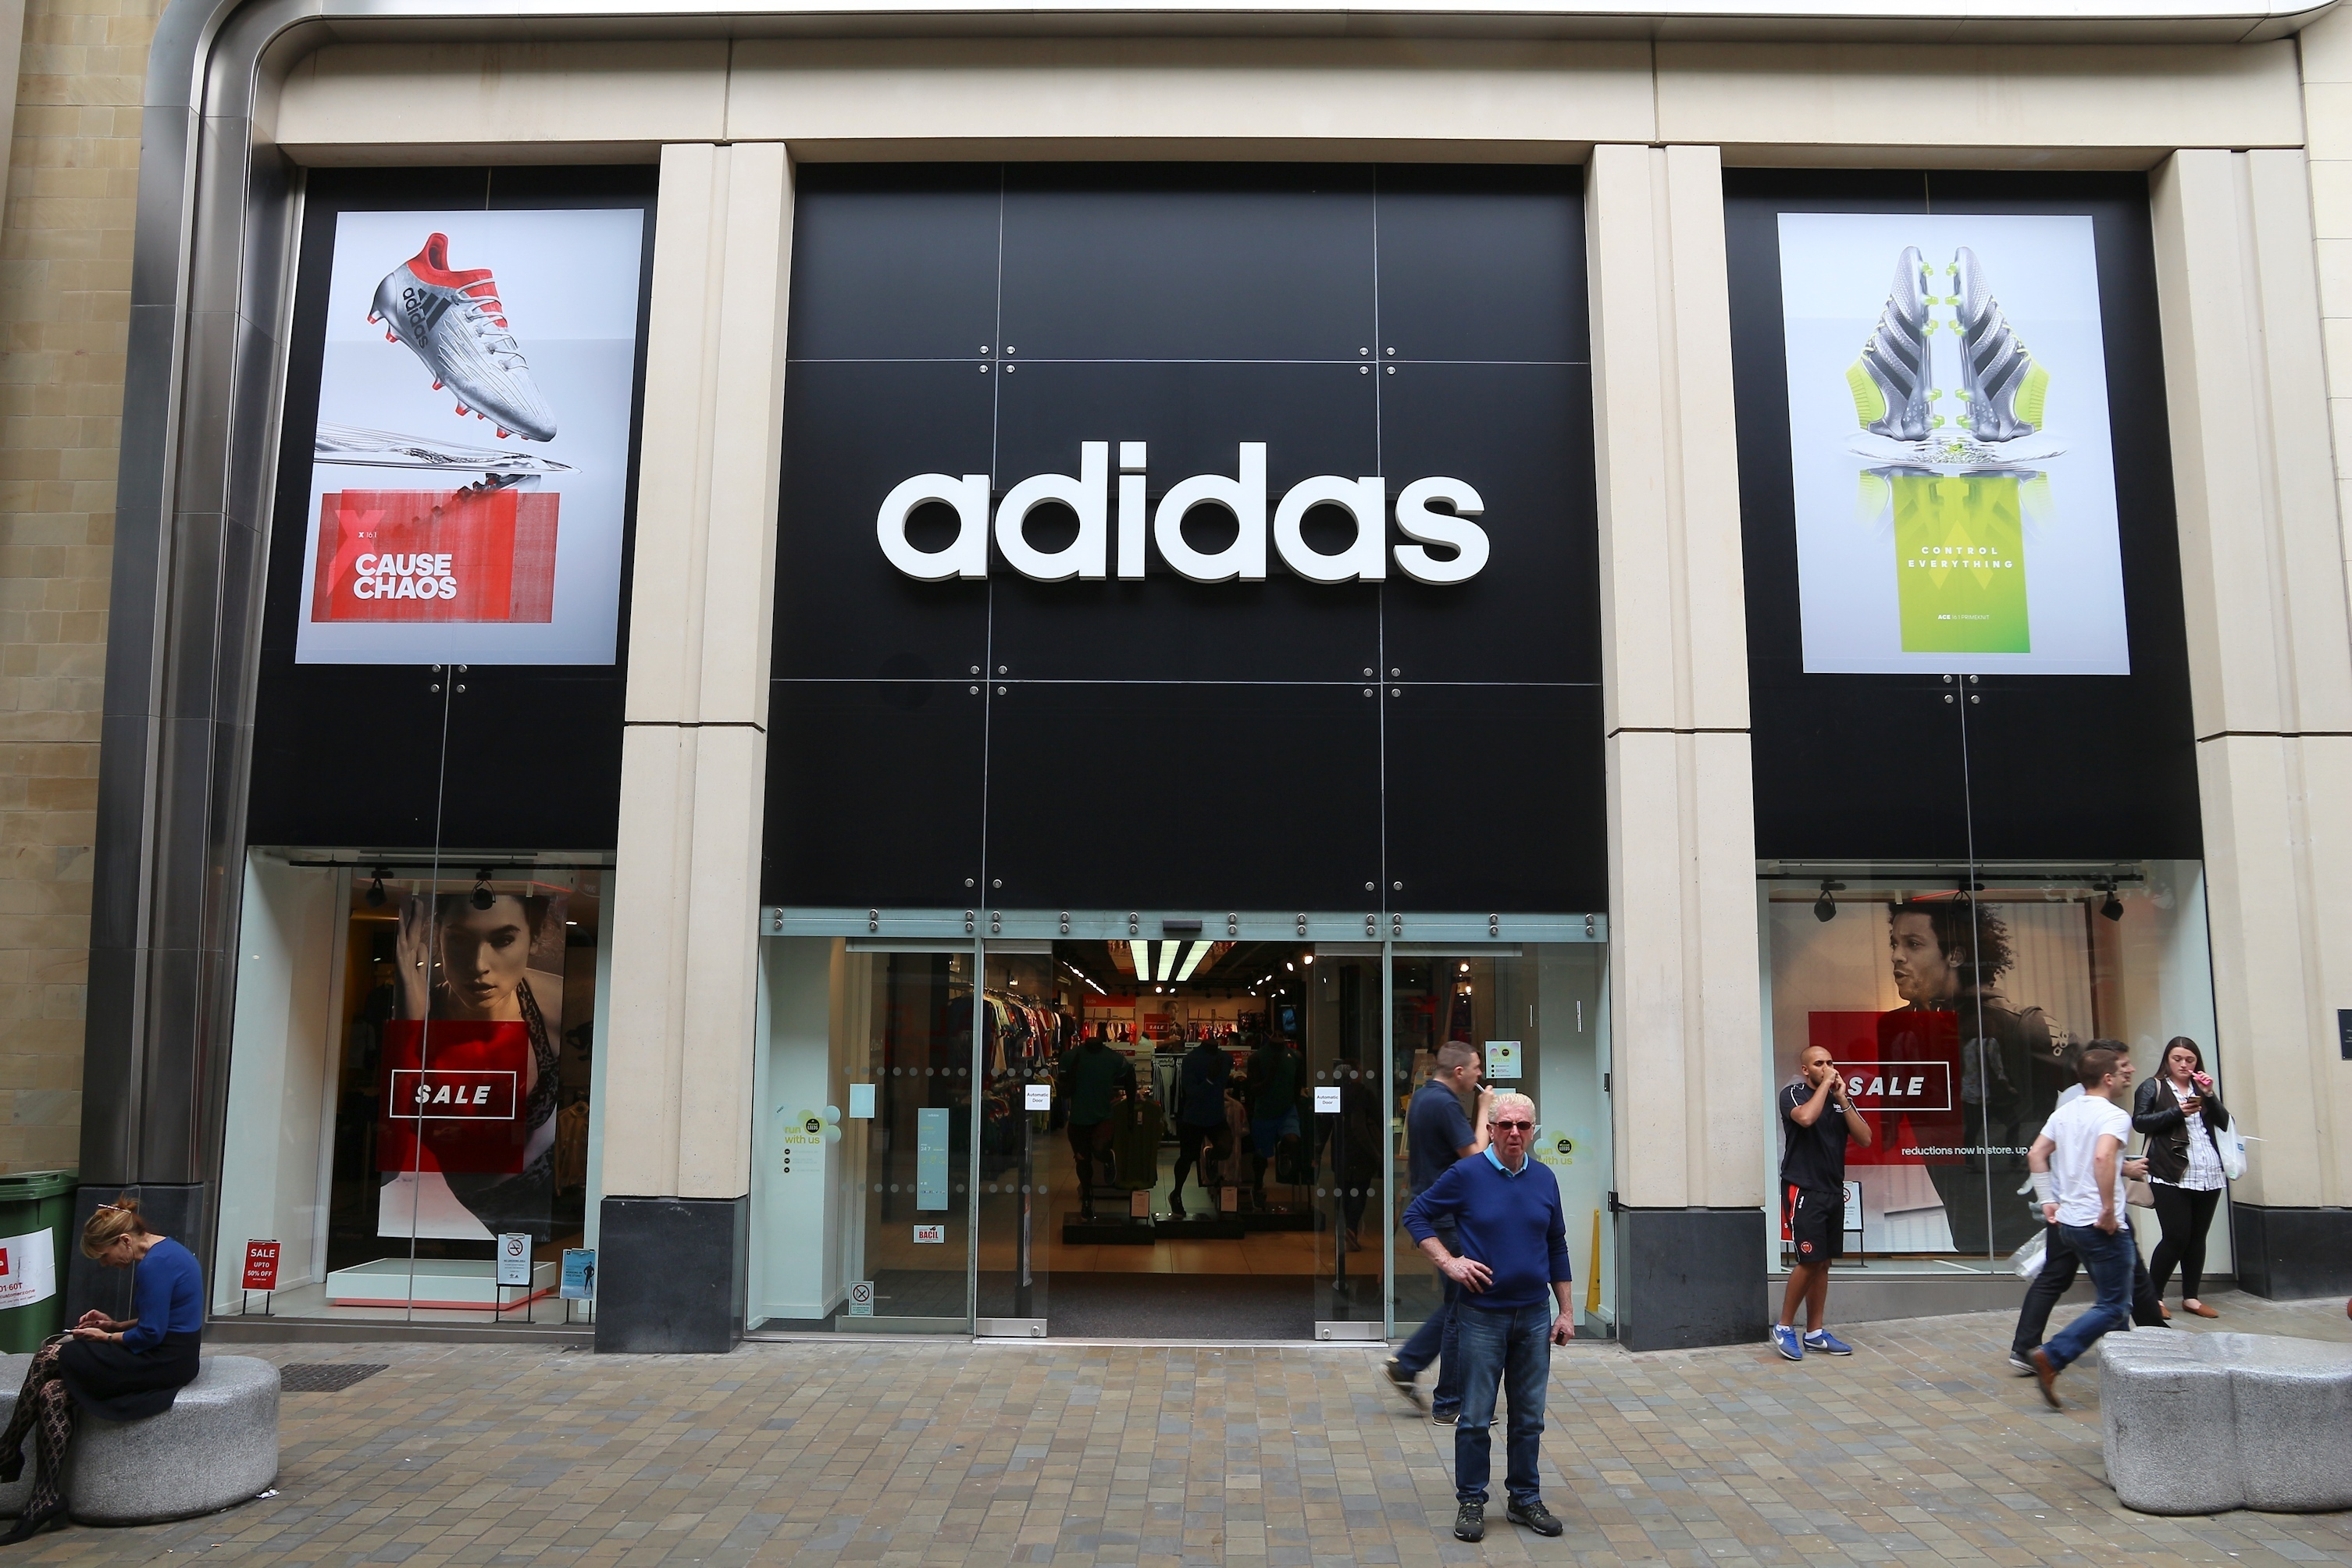 Adidas Global Hr Director Exits Company After Controversial Remark Wwd